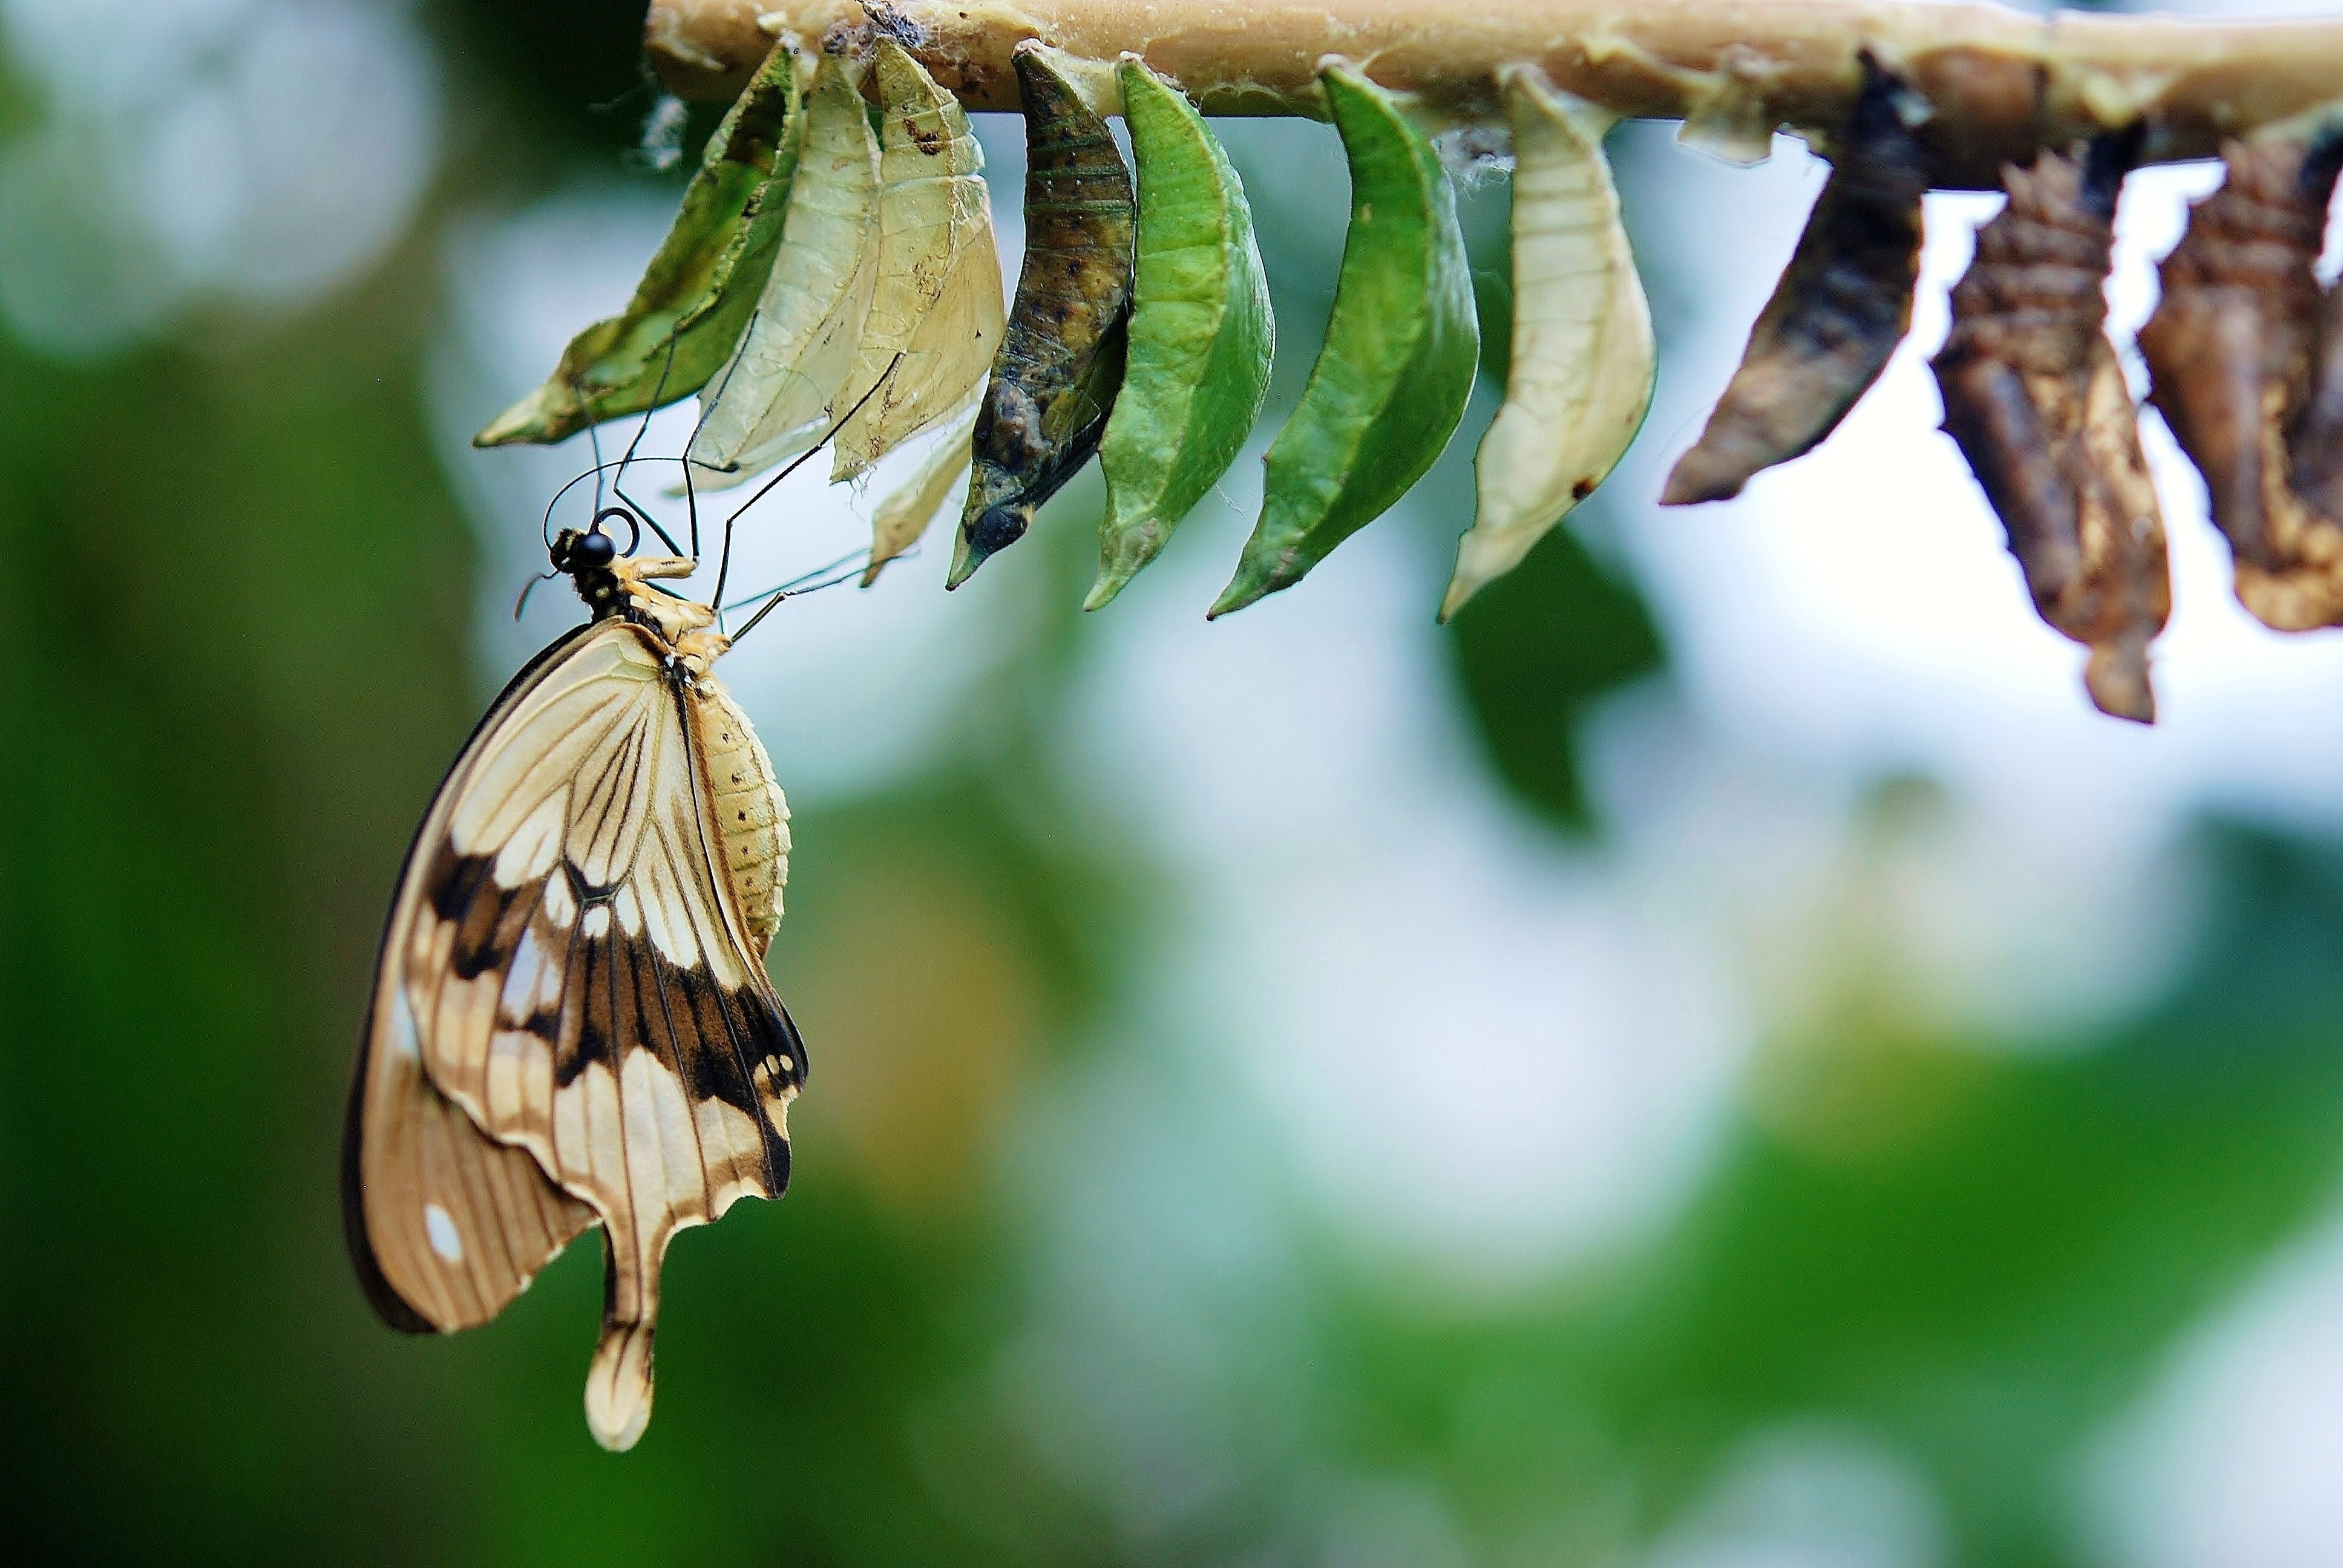 Brown and White Swallowtail Butterfly Under White Green and Brown Cocoon in Shallow Focus Lens